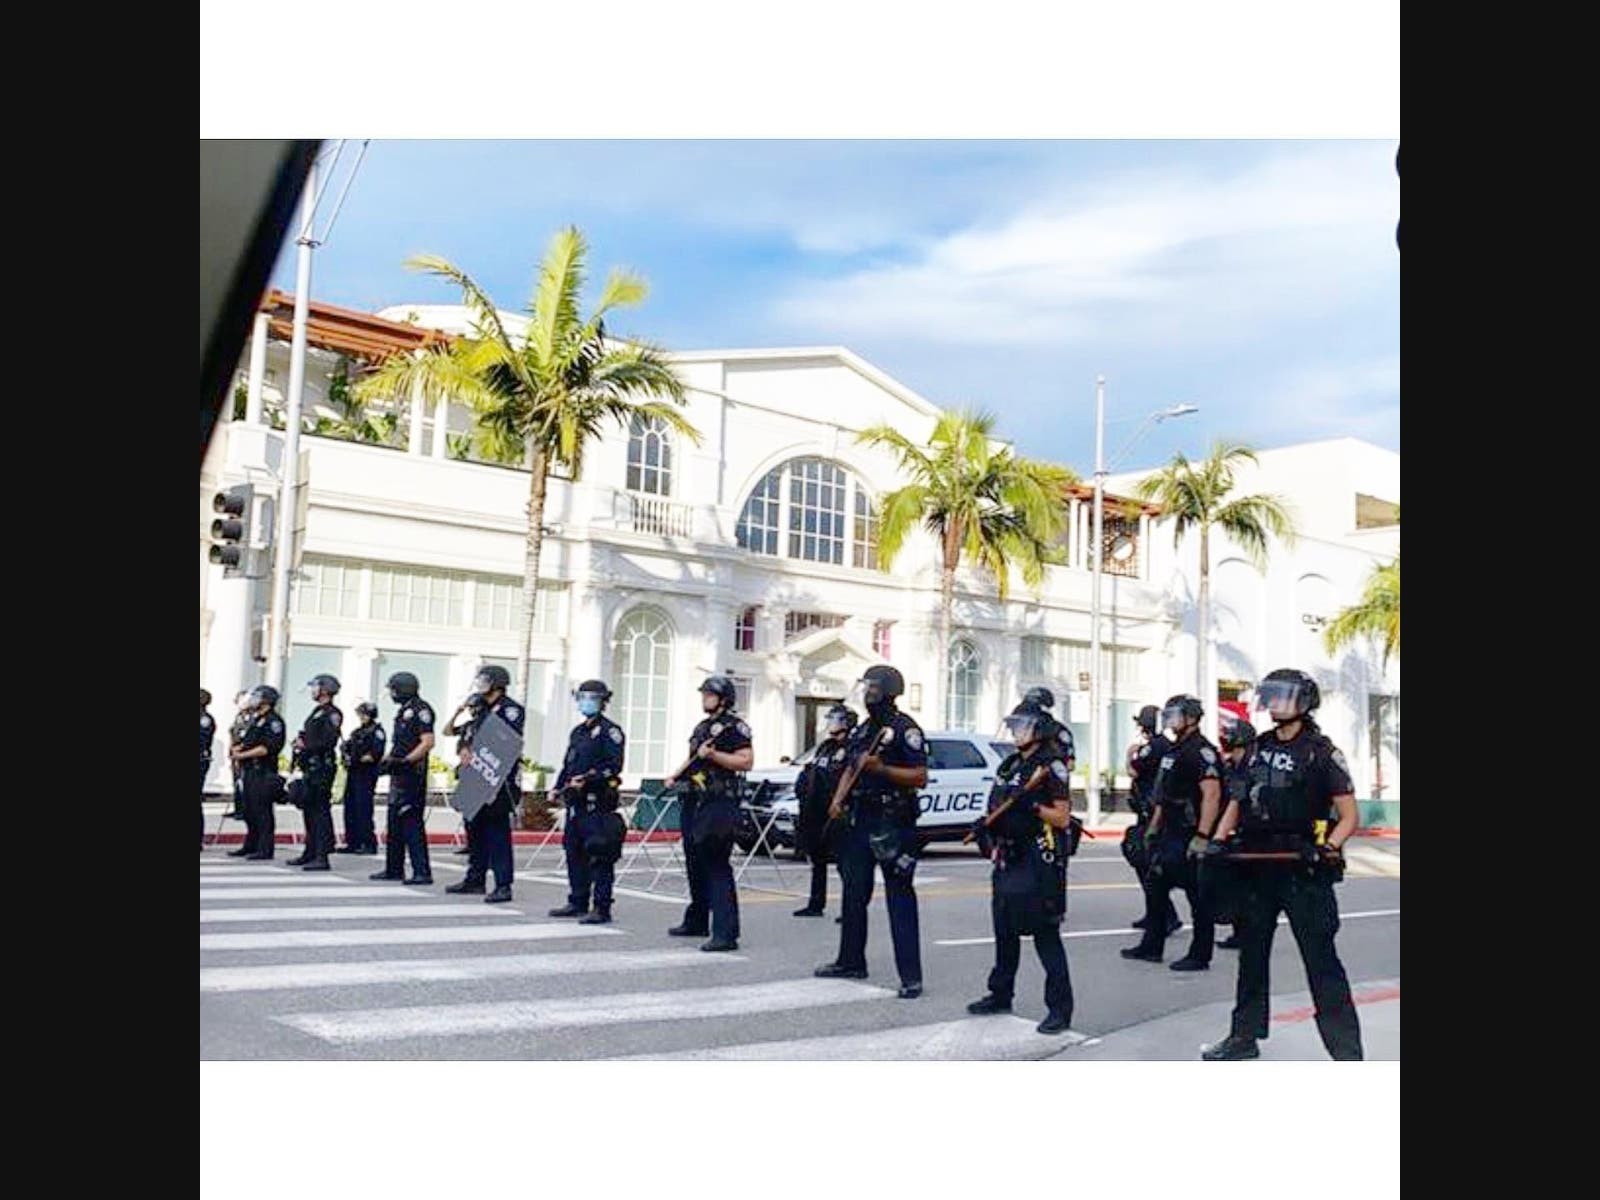 Beverly Hills Calm As Chauvin Verdict Announced | Beverly ...